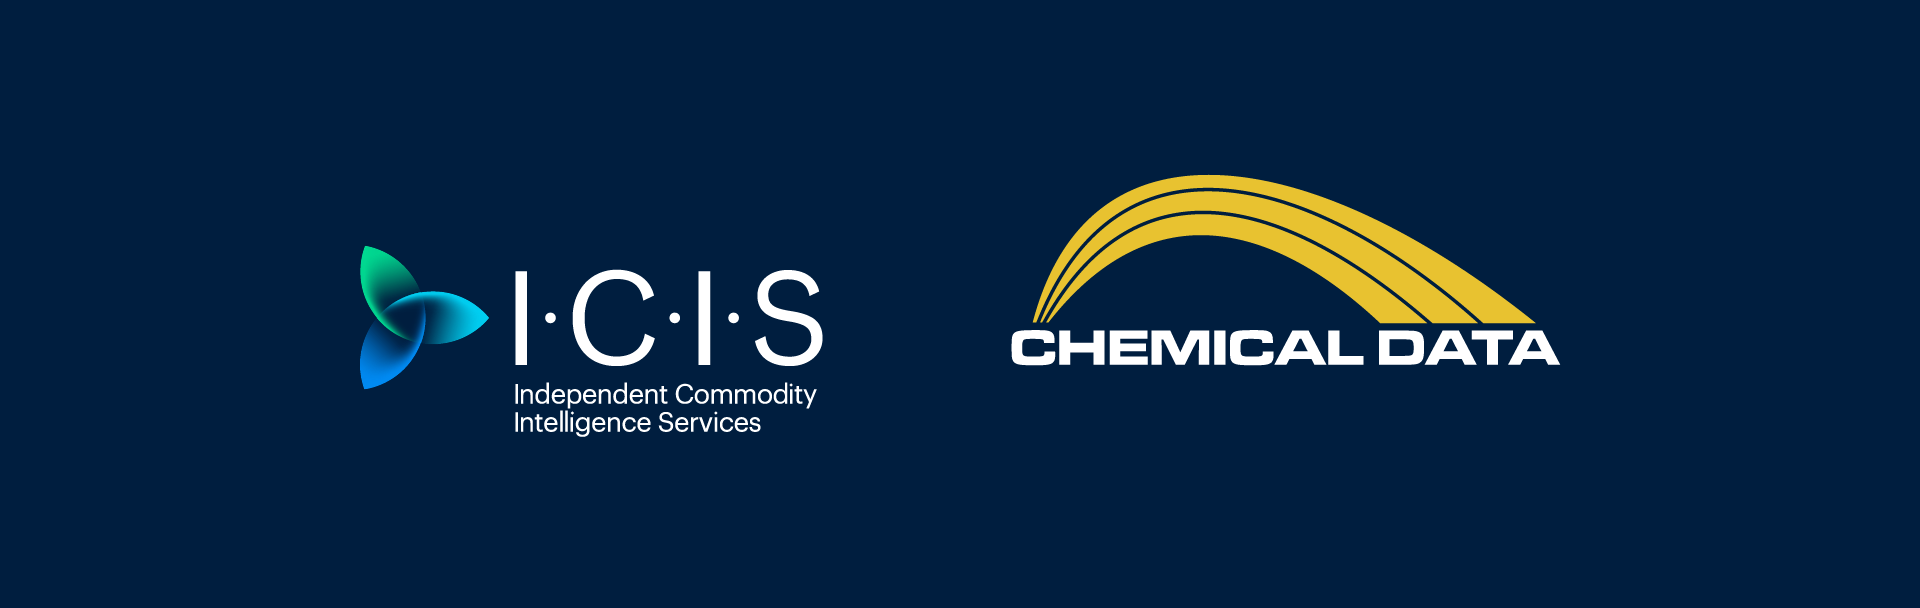 ICIS acquires Chemical Data - Defining the future of the chemicals industry together